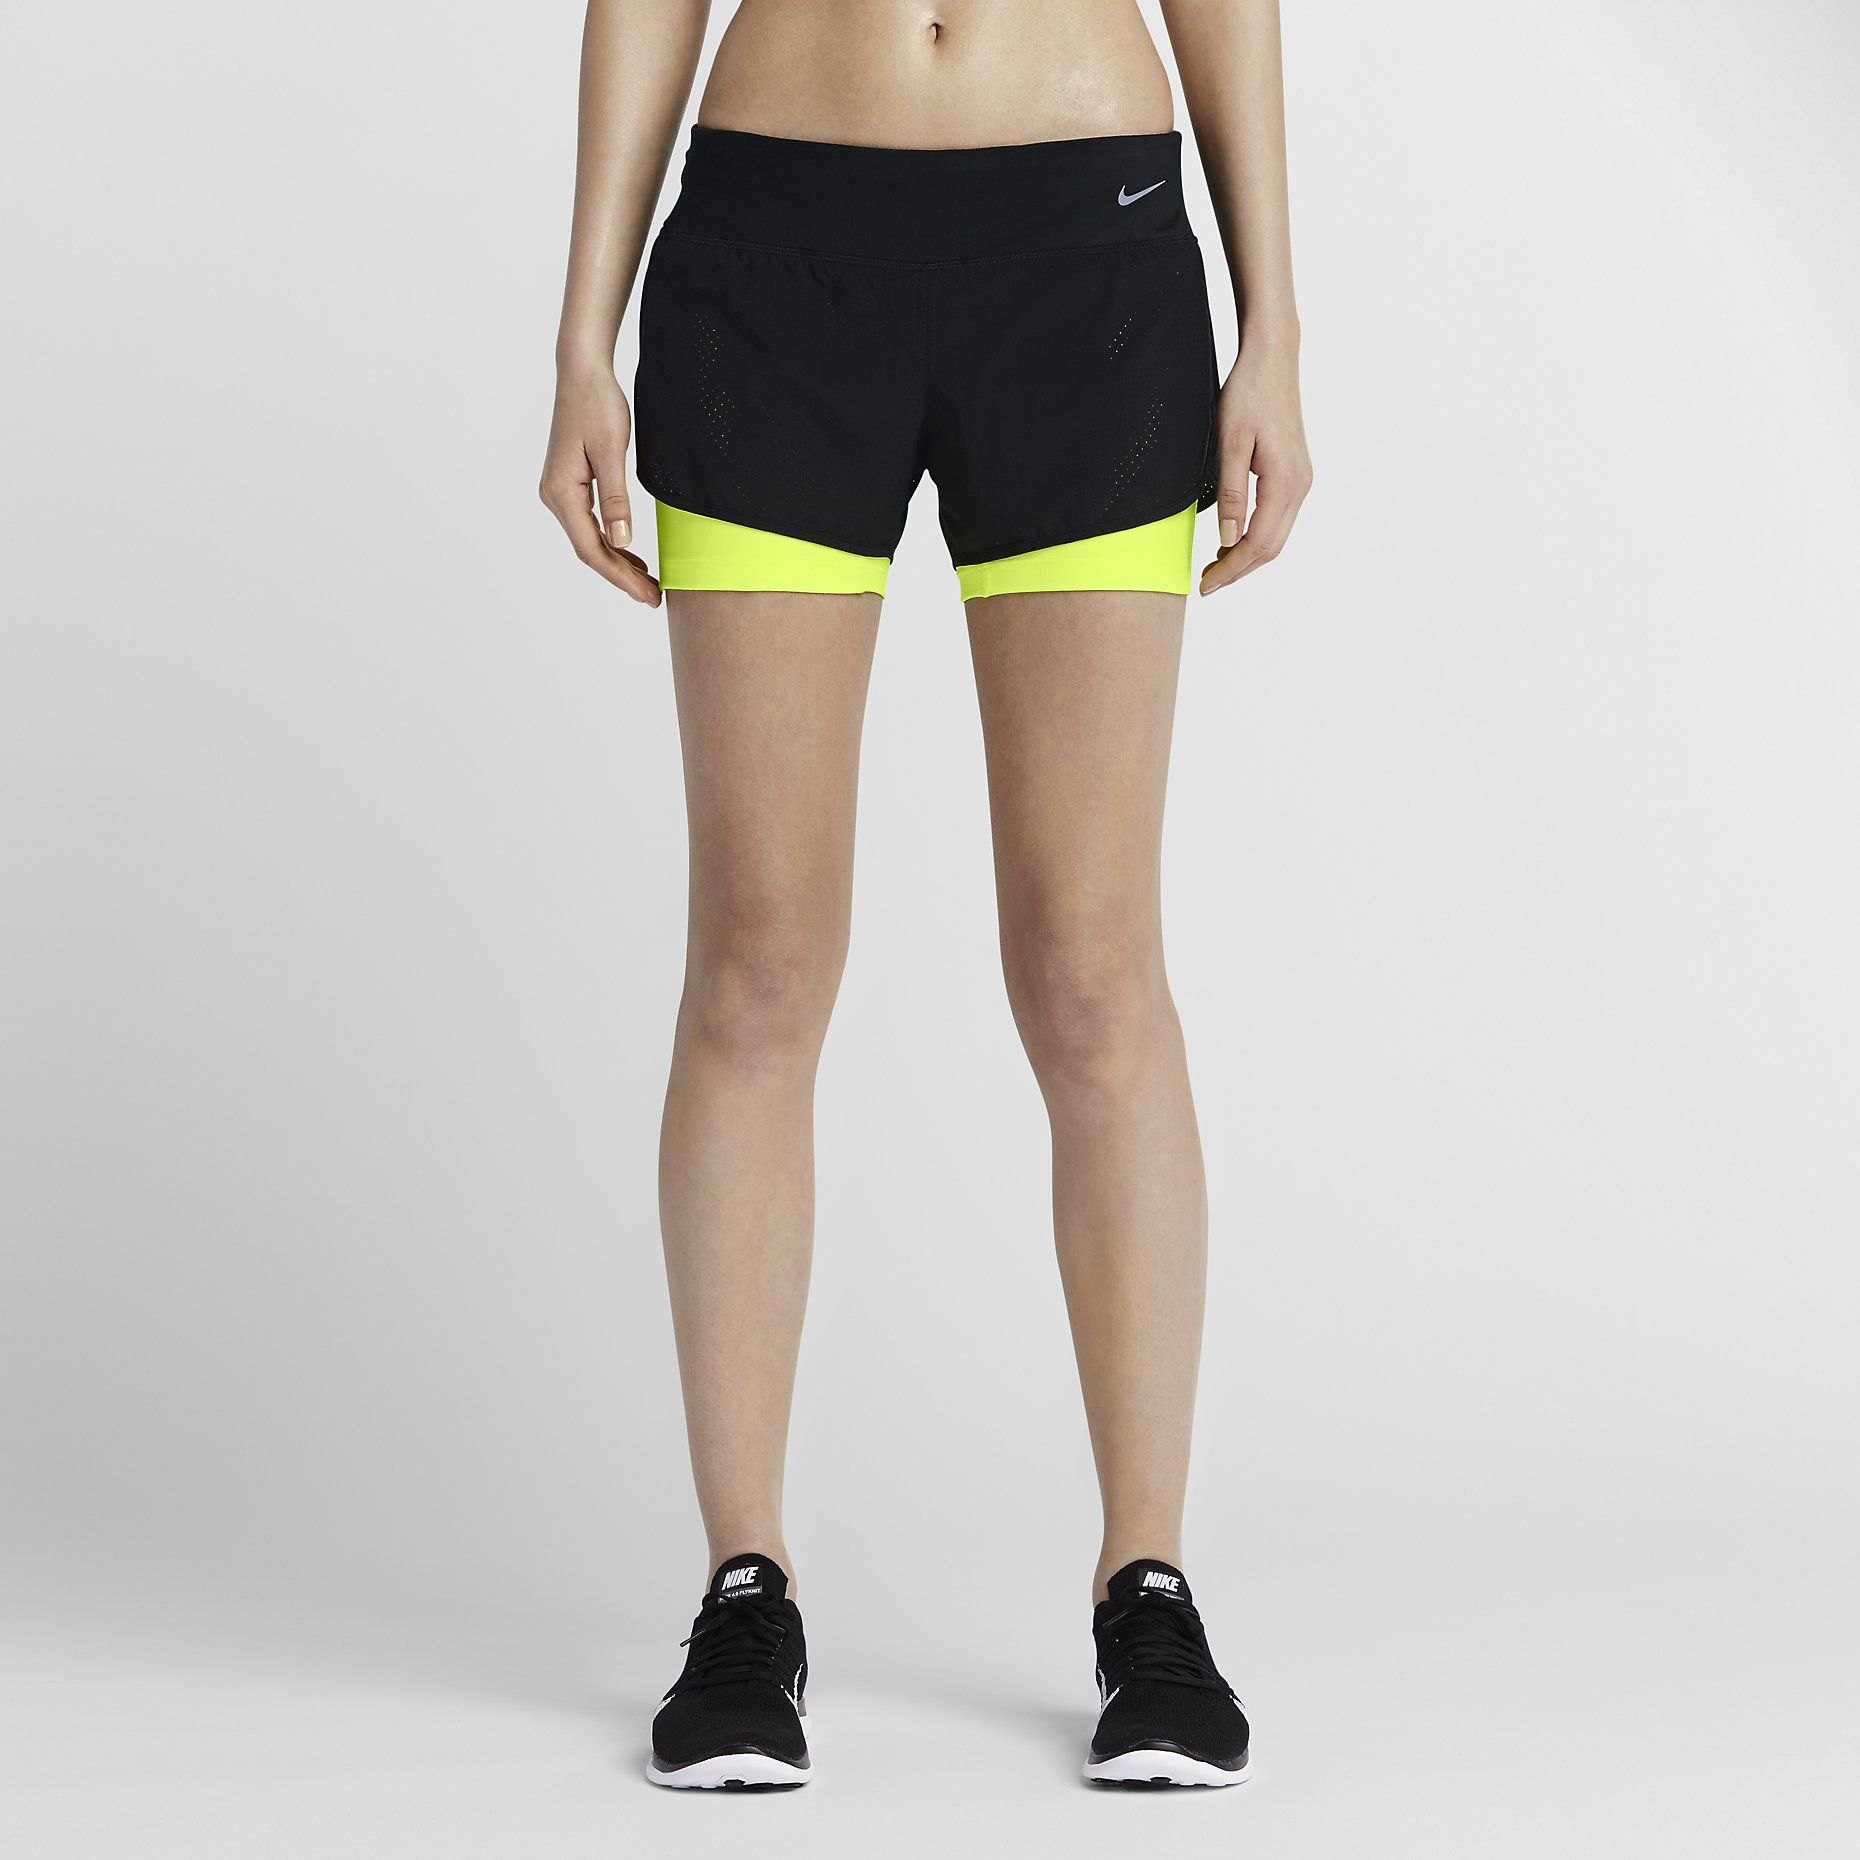 4f718fa459aa8 Short da running Nike 2 Perforated Rival 2-in-1 - Donna. Nike Store ...